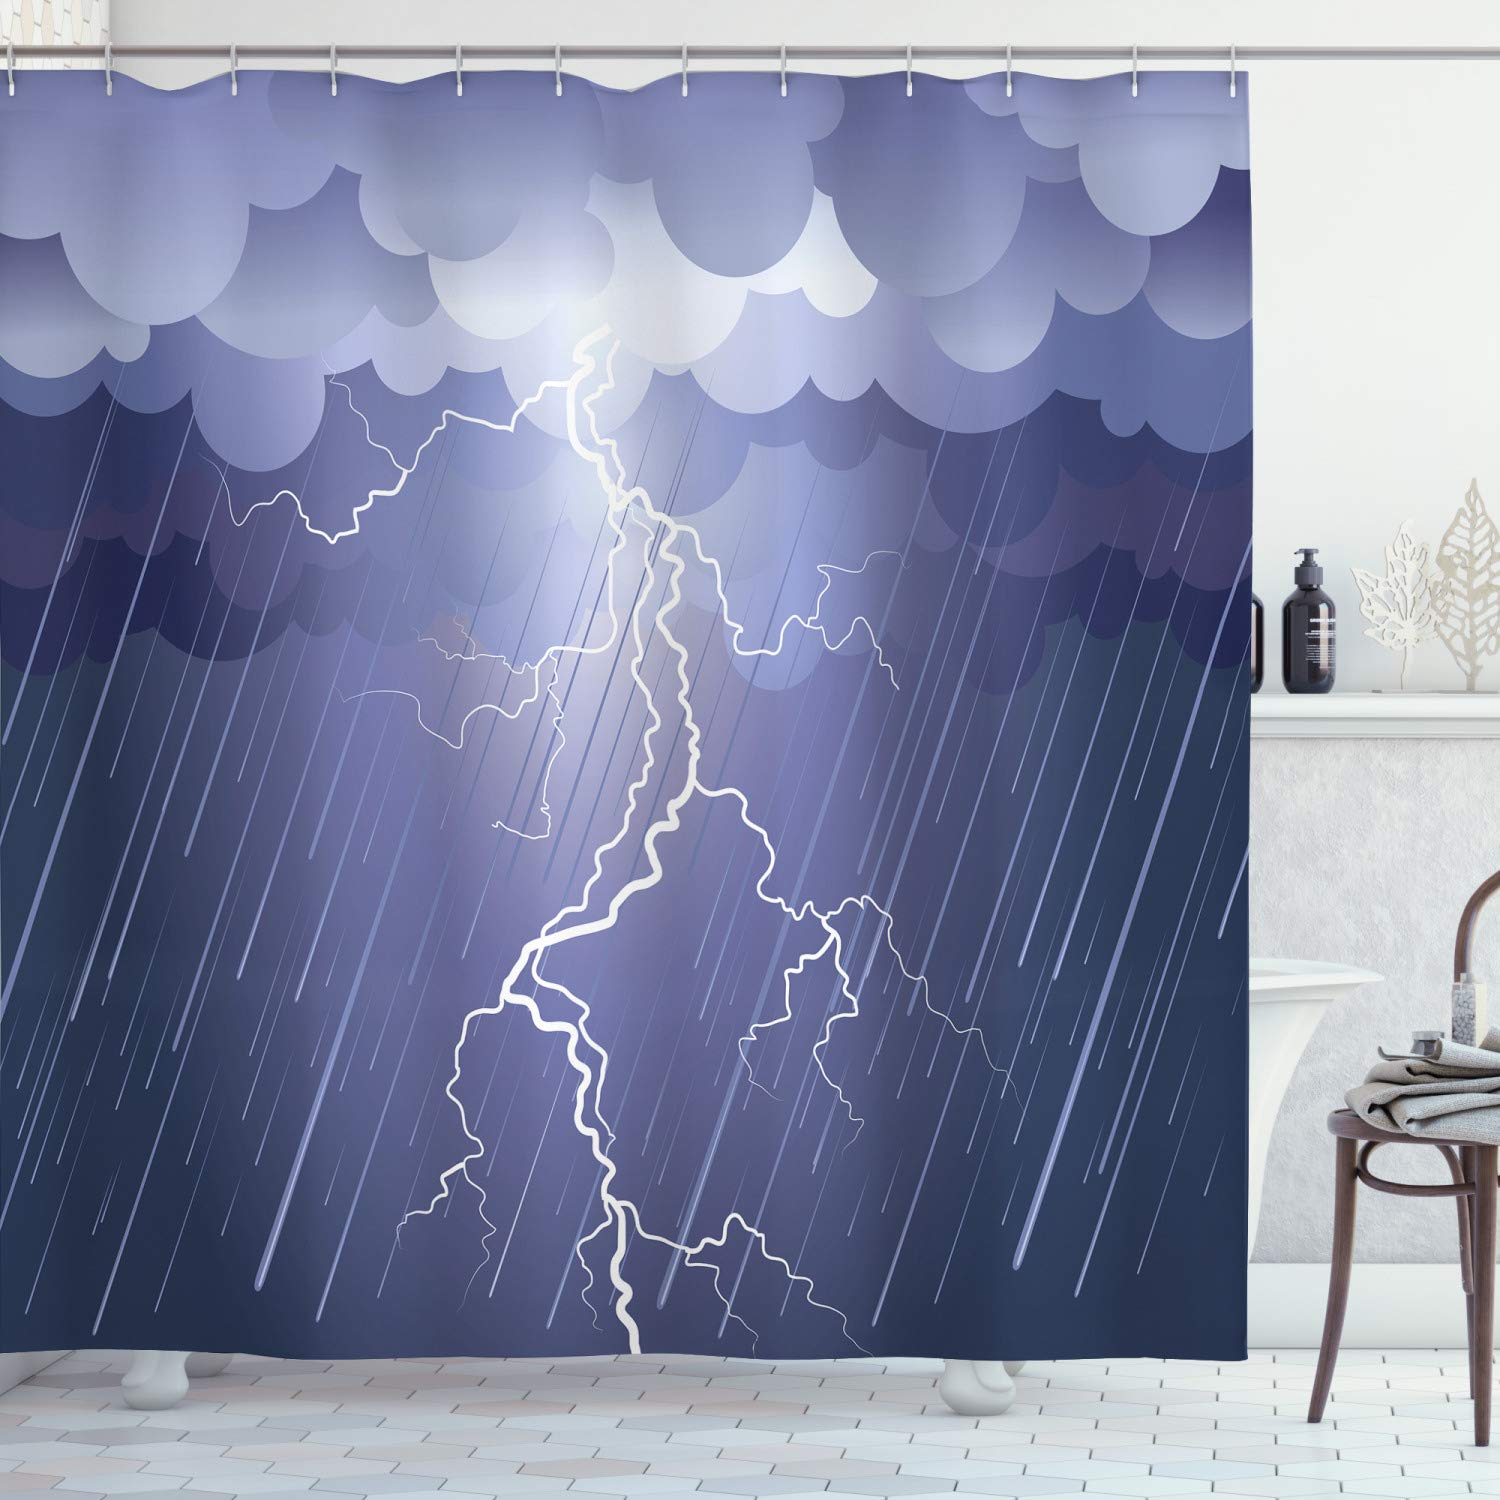 """Ambesonne Night Shower Curtain, Lightning Strike Thunderstorm in The Air at Dark Night Rainy Electric Force Bolts Image, Cloth Fabric Bathroom Decor Set with Hooks, 70"""" Long, Lavander"""